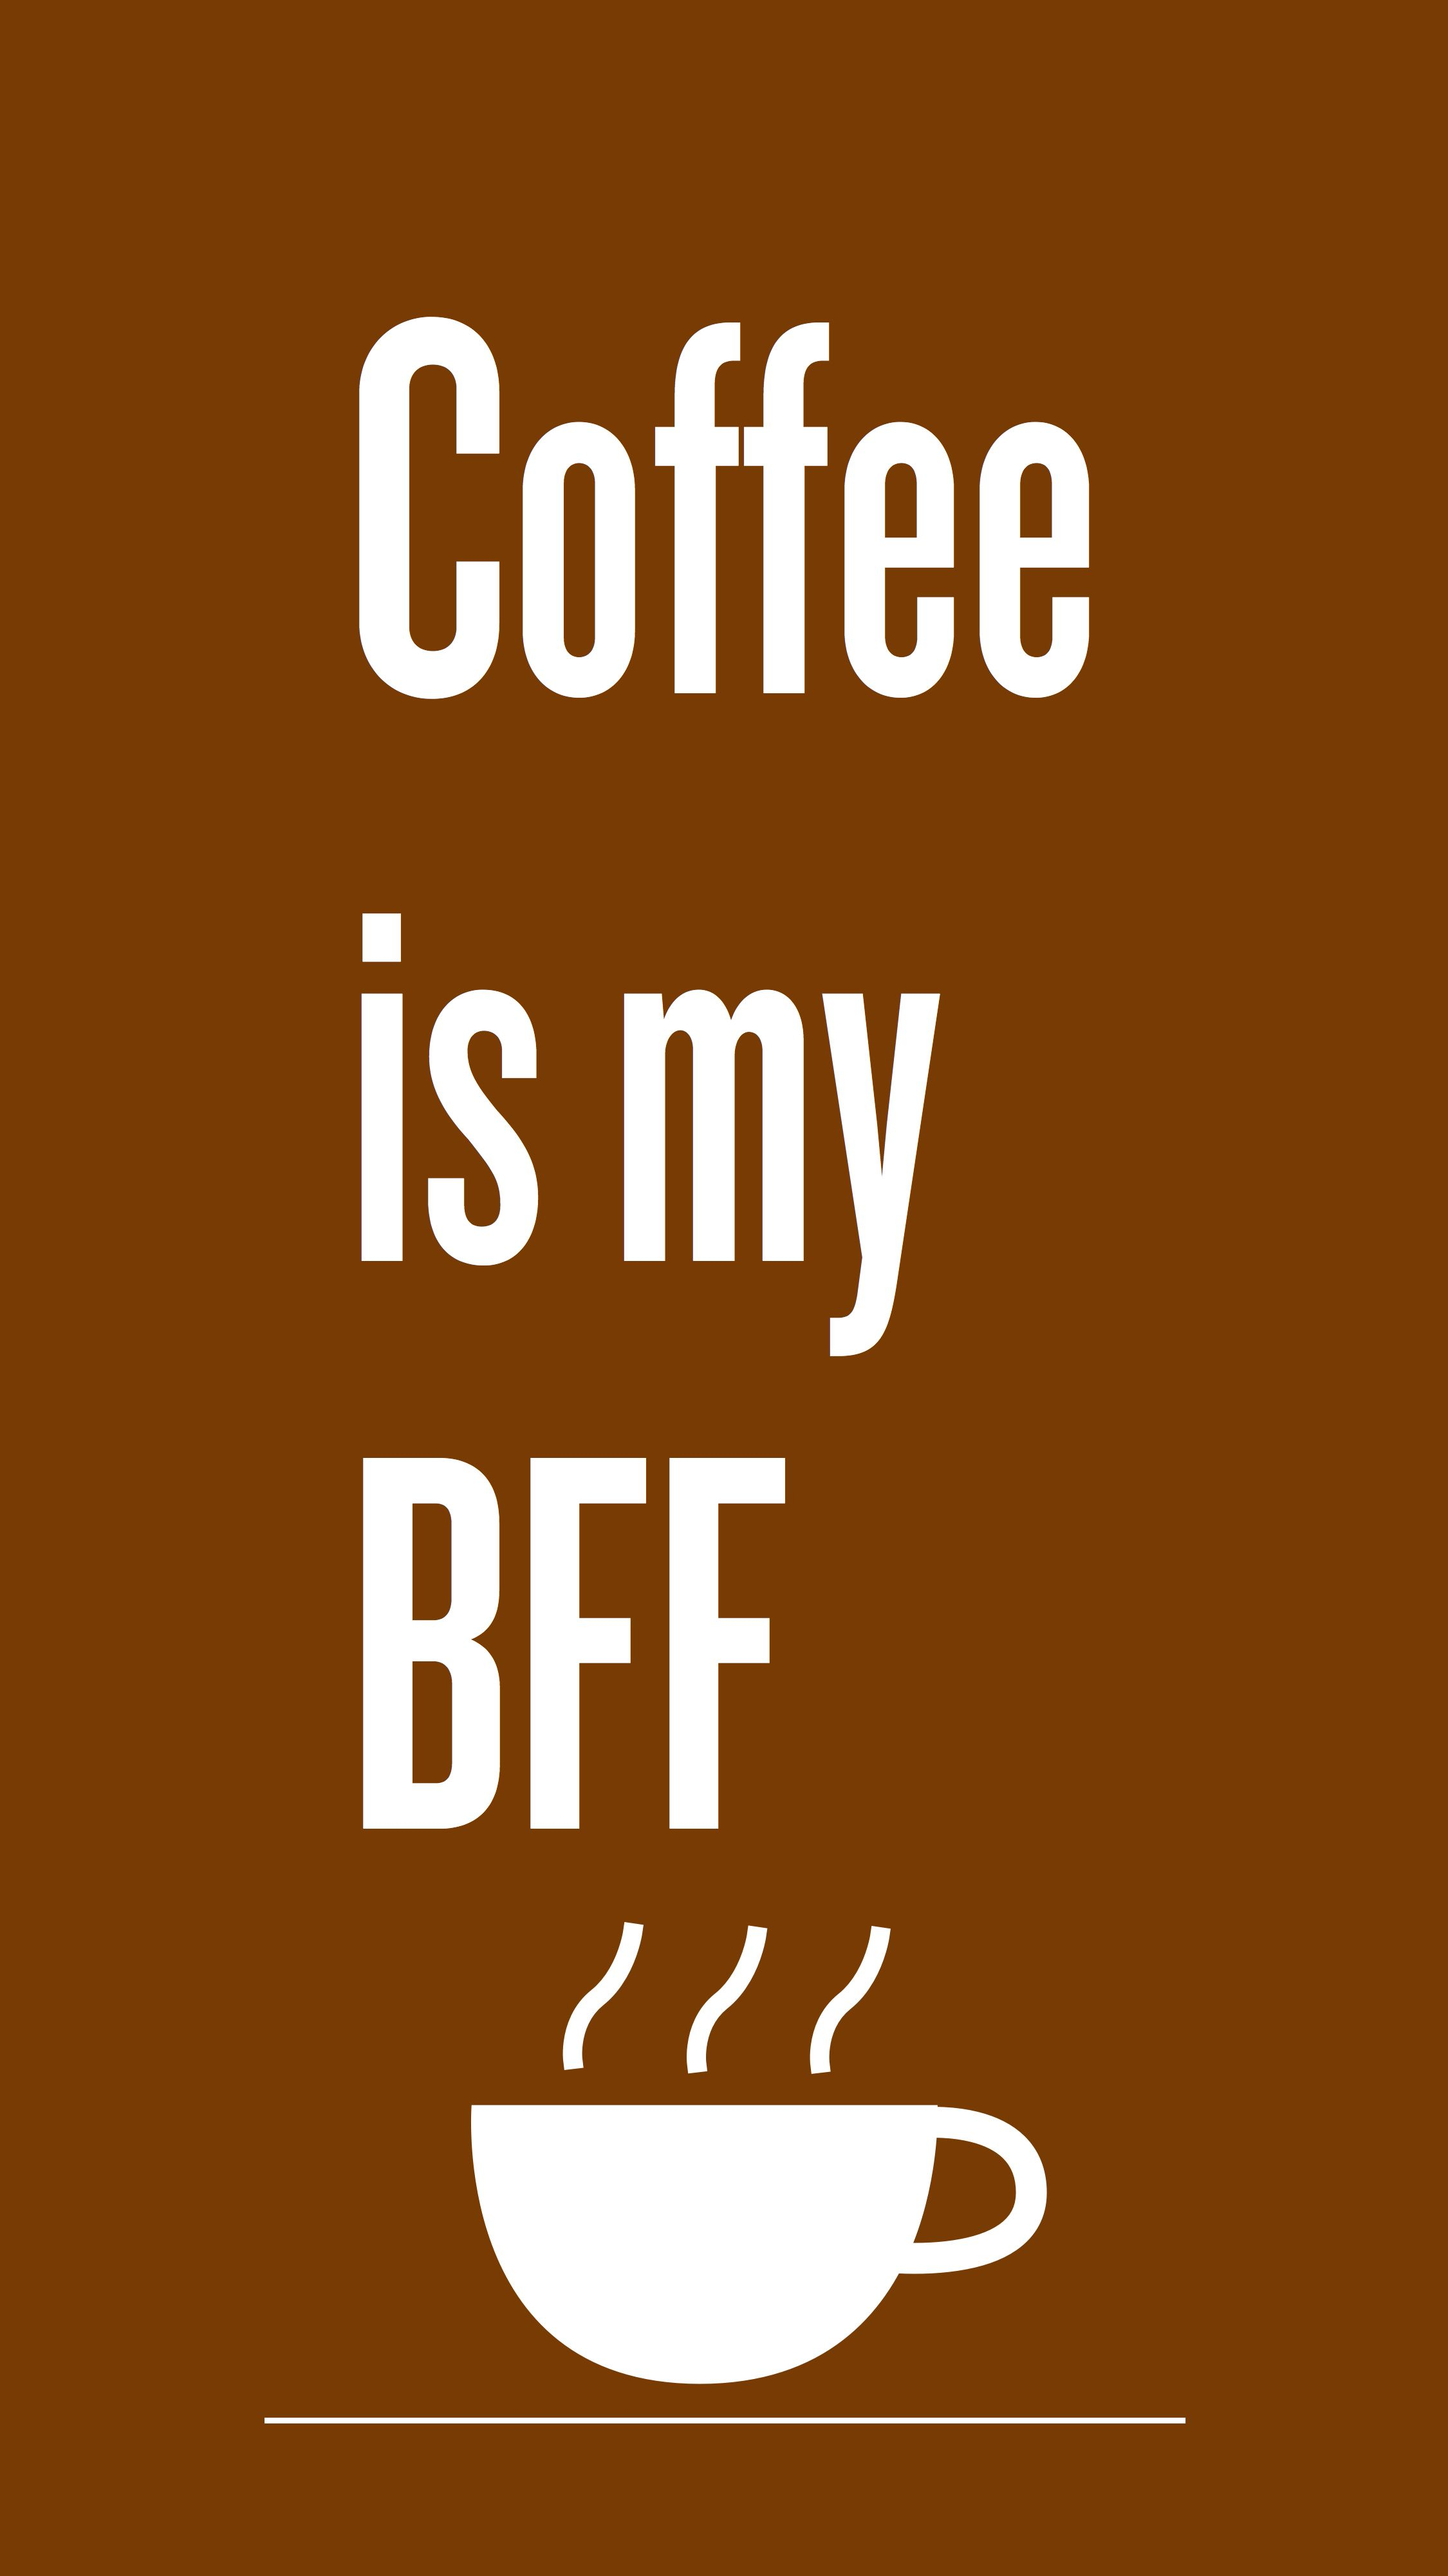 Coffee is my BFF iPhone wallpaper Coffee and Tea Wallpapers for